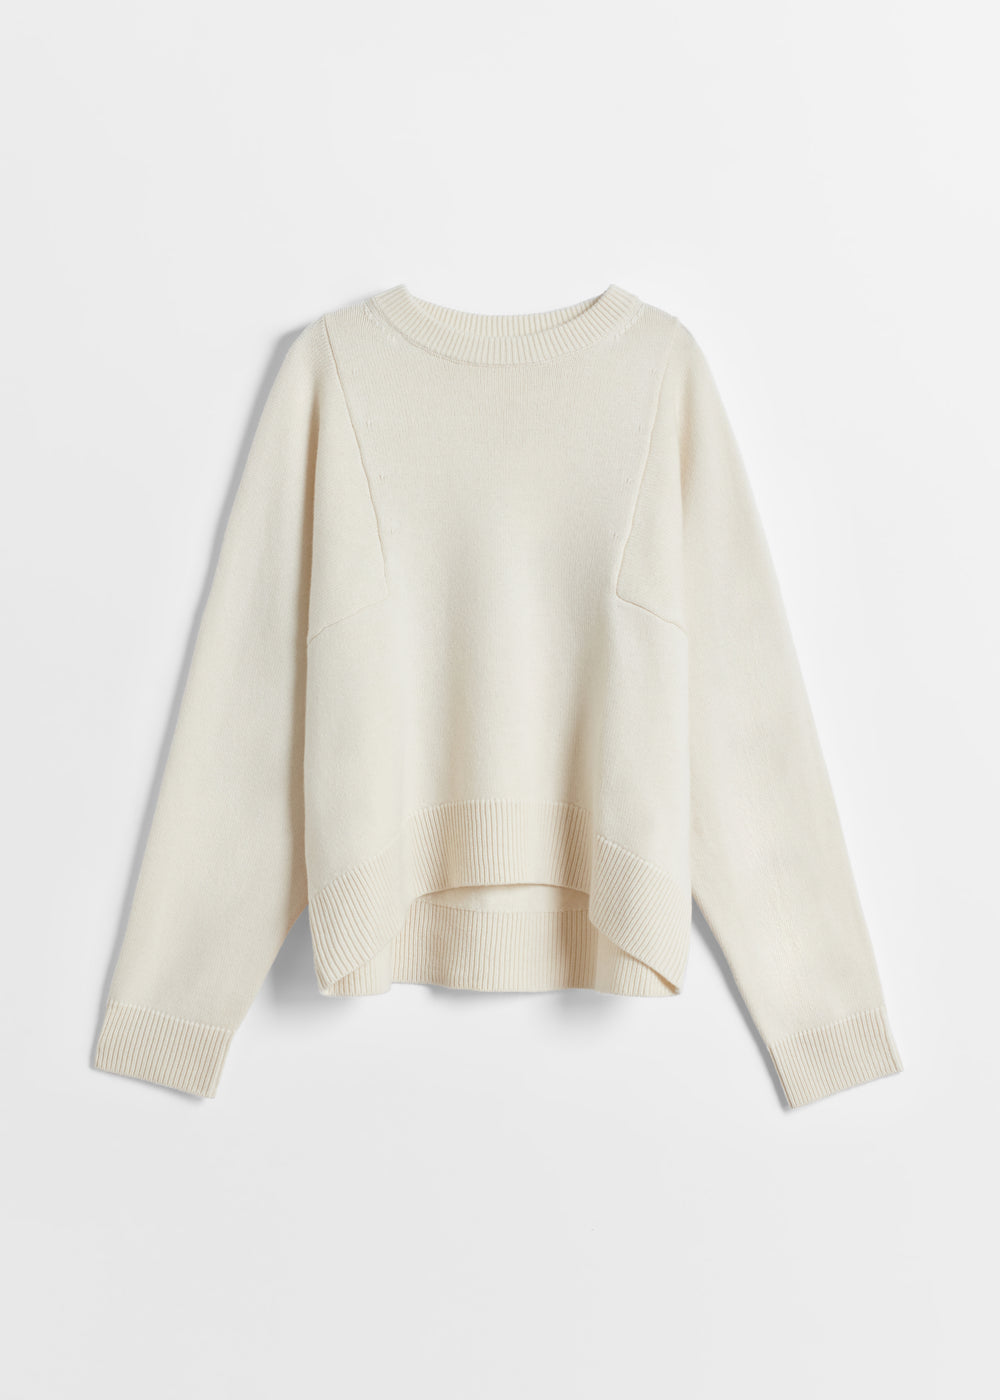 Crew Neck Sweater in Wool Cashmere - Black in Ivory by Co Collections